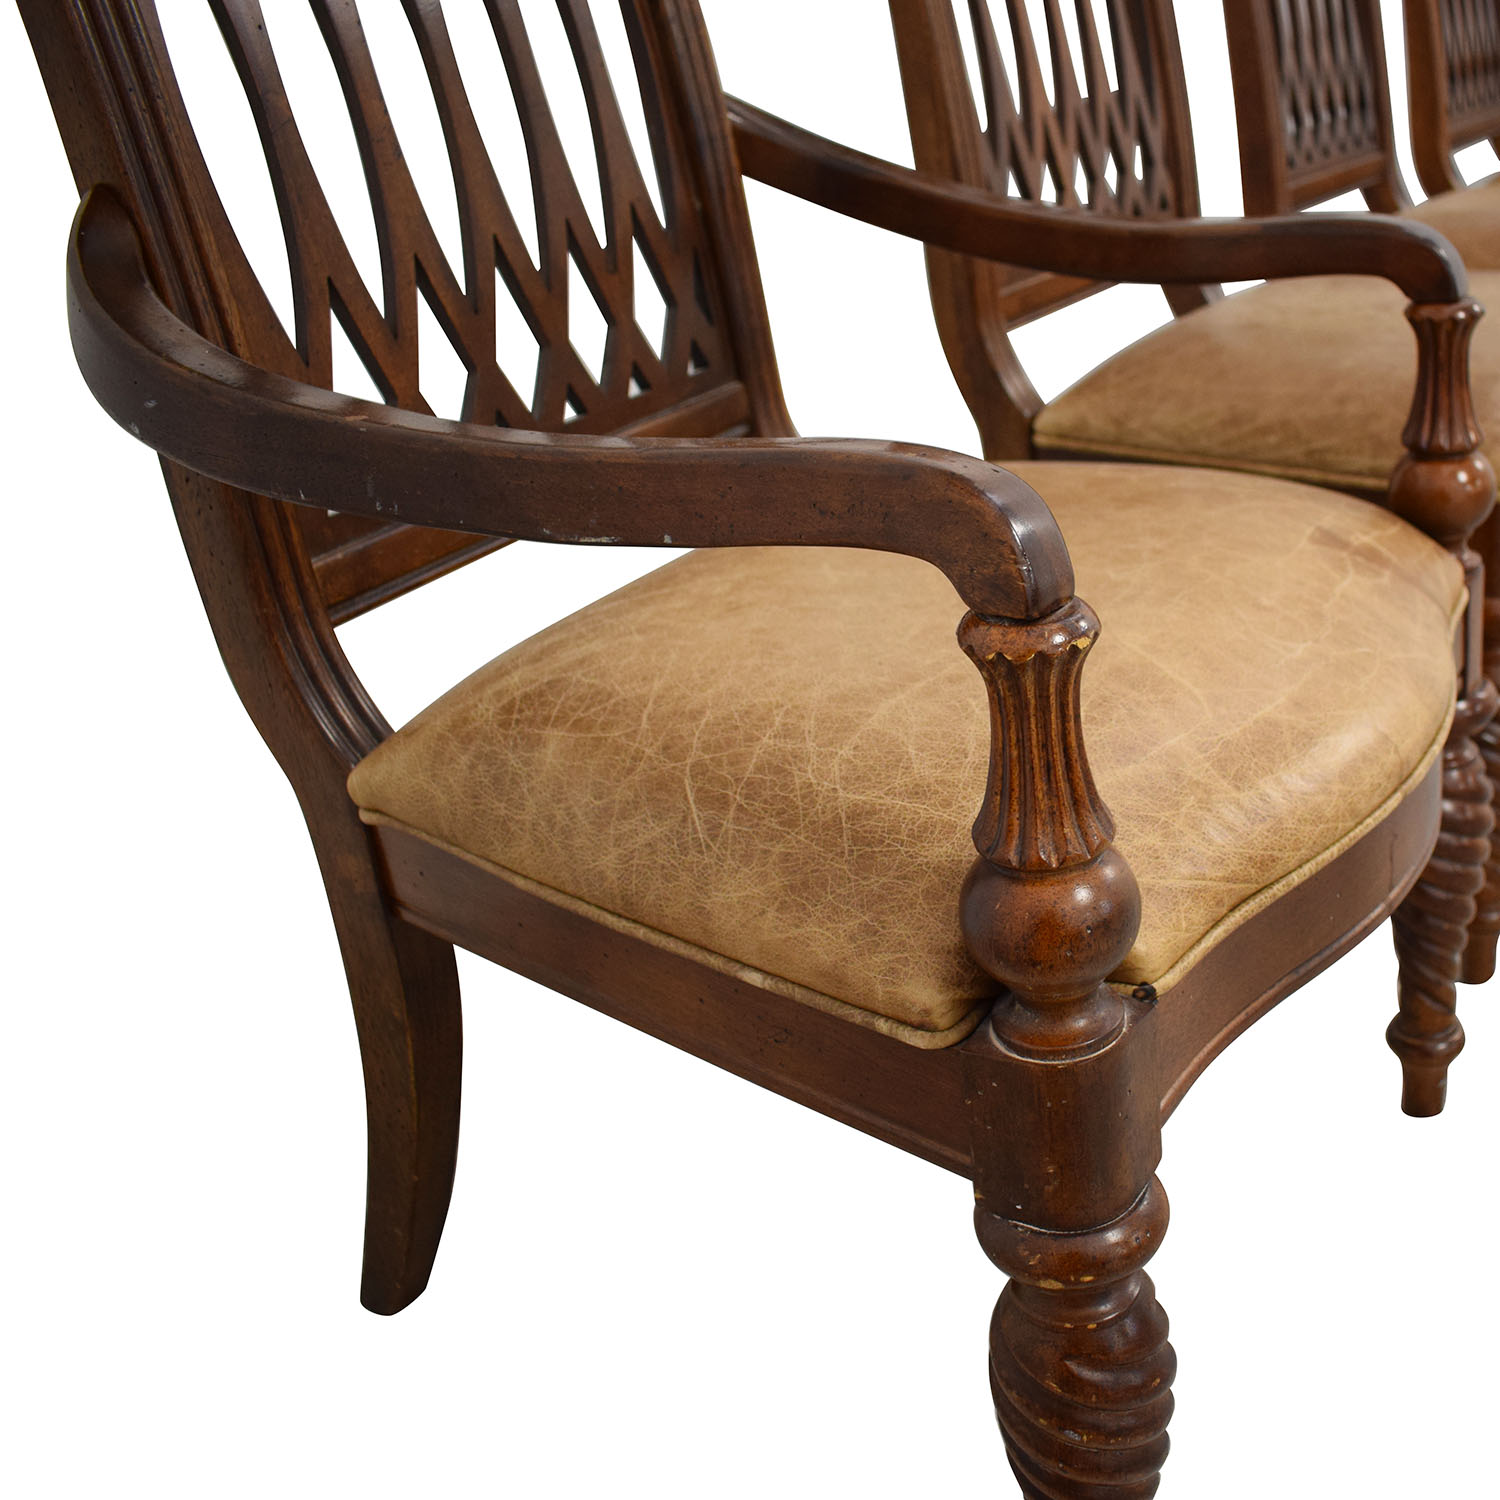 Bernhardt Bernhardt Embassy Row Cherry Carved Wood Dining Chairs for sale